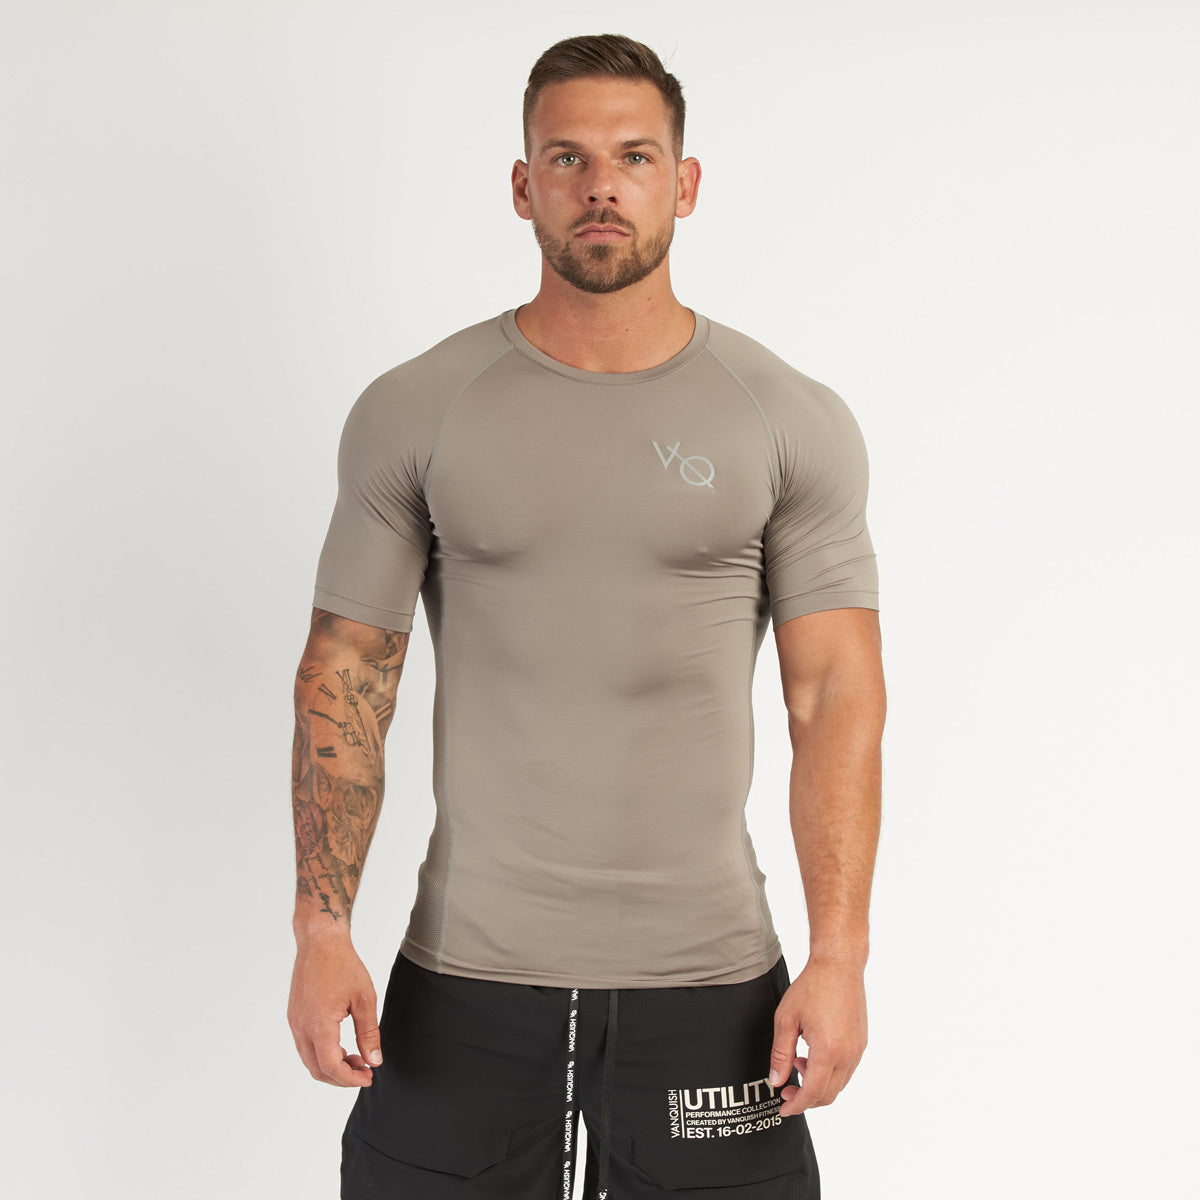 Vanquish Utility Men's Khaki Short Sleeved Compression T Shirt